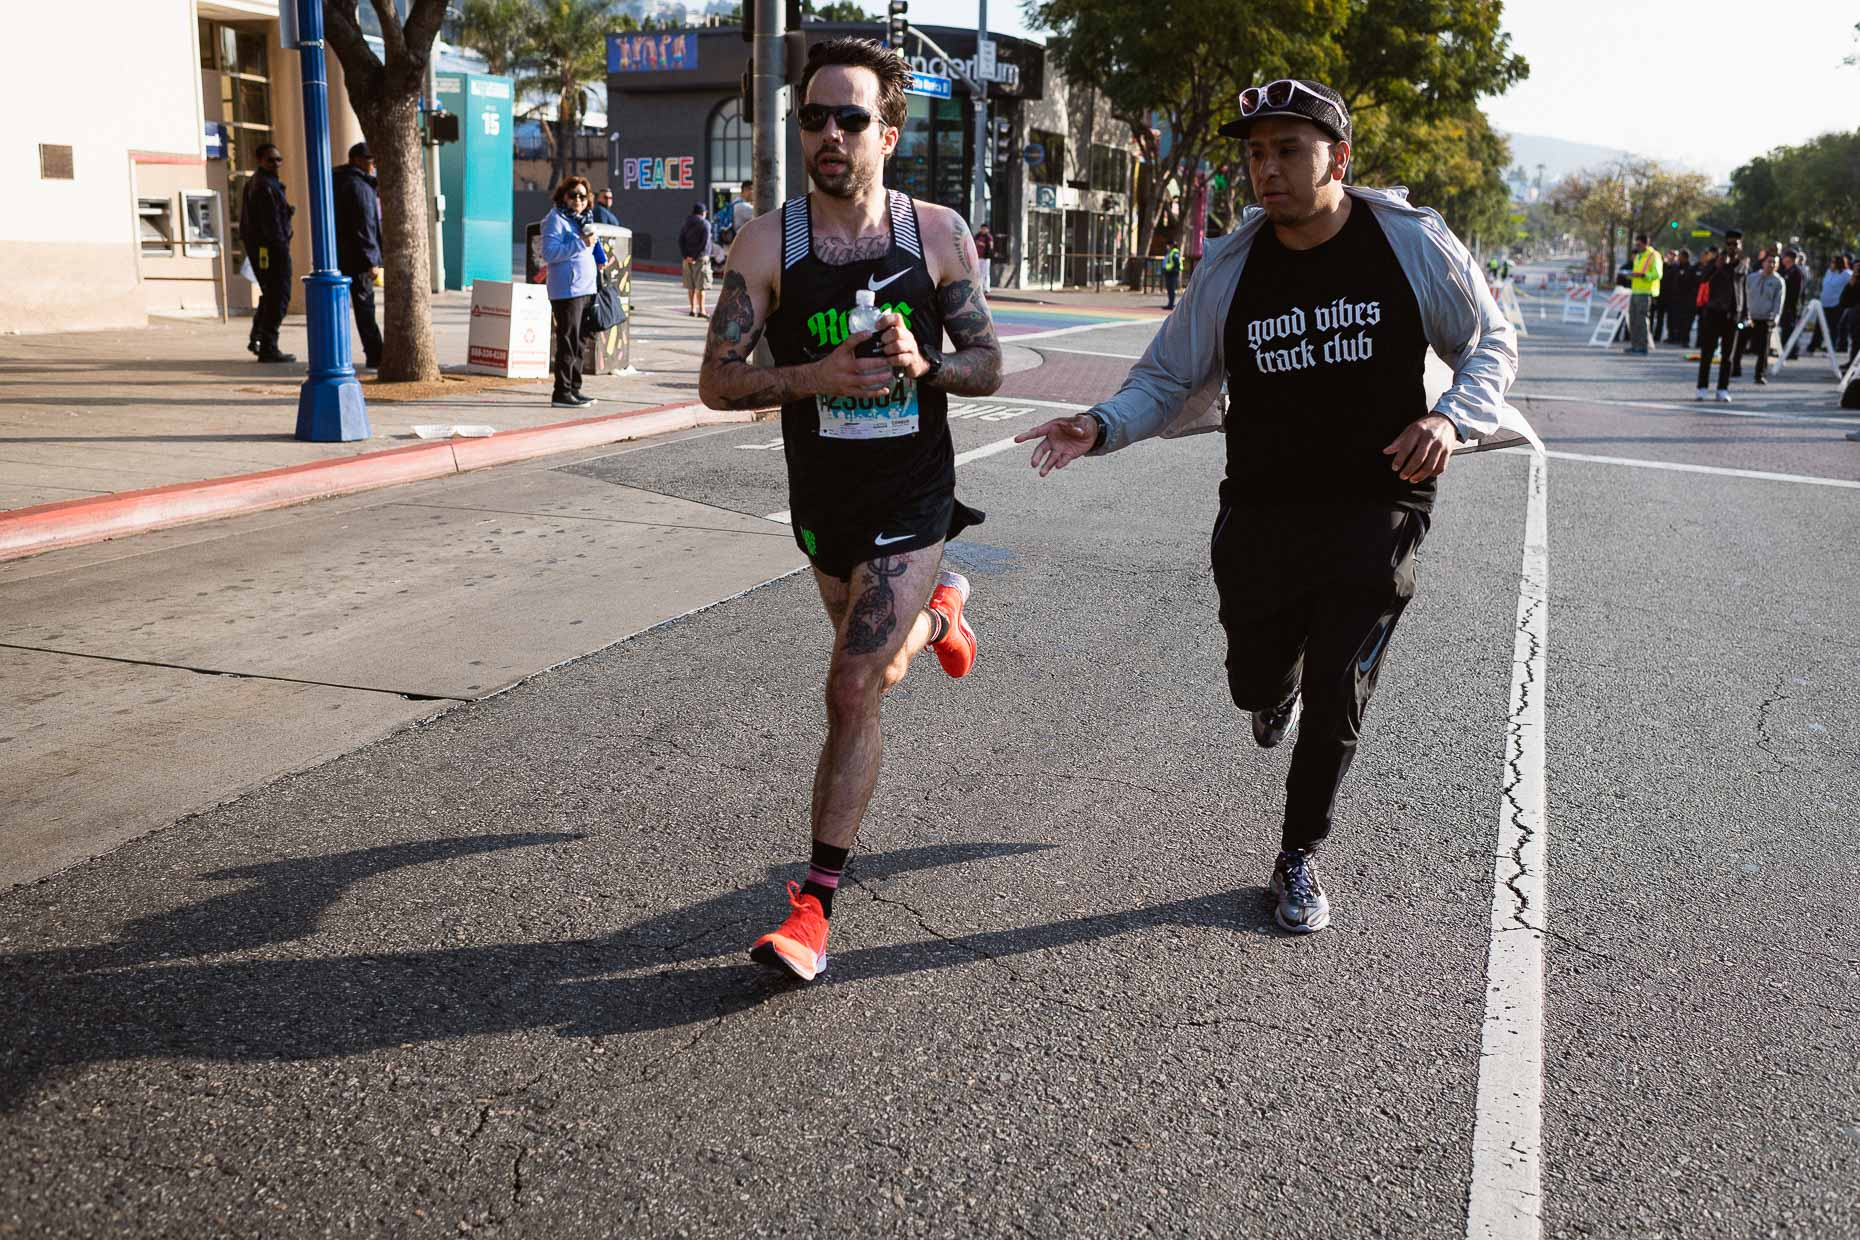 LA_Marathon_24_03_2019_photo_Christian_Brecheis-8062